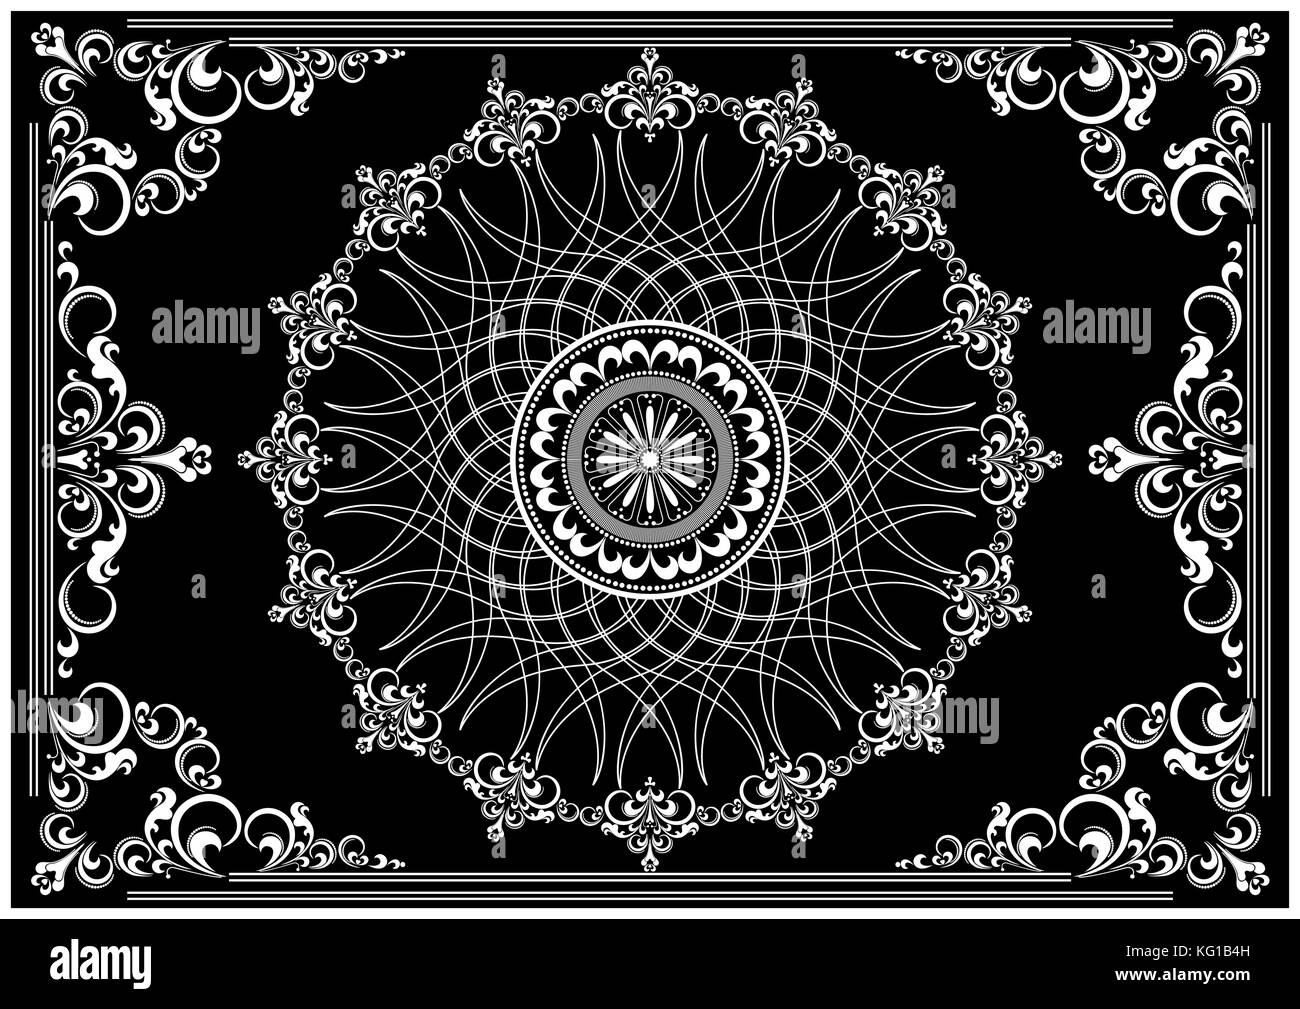 Luxury vintage frame with white ornament on black  background for decoration pages - Stock Image